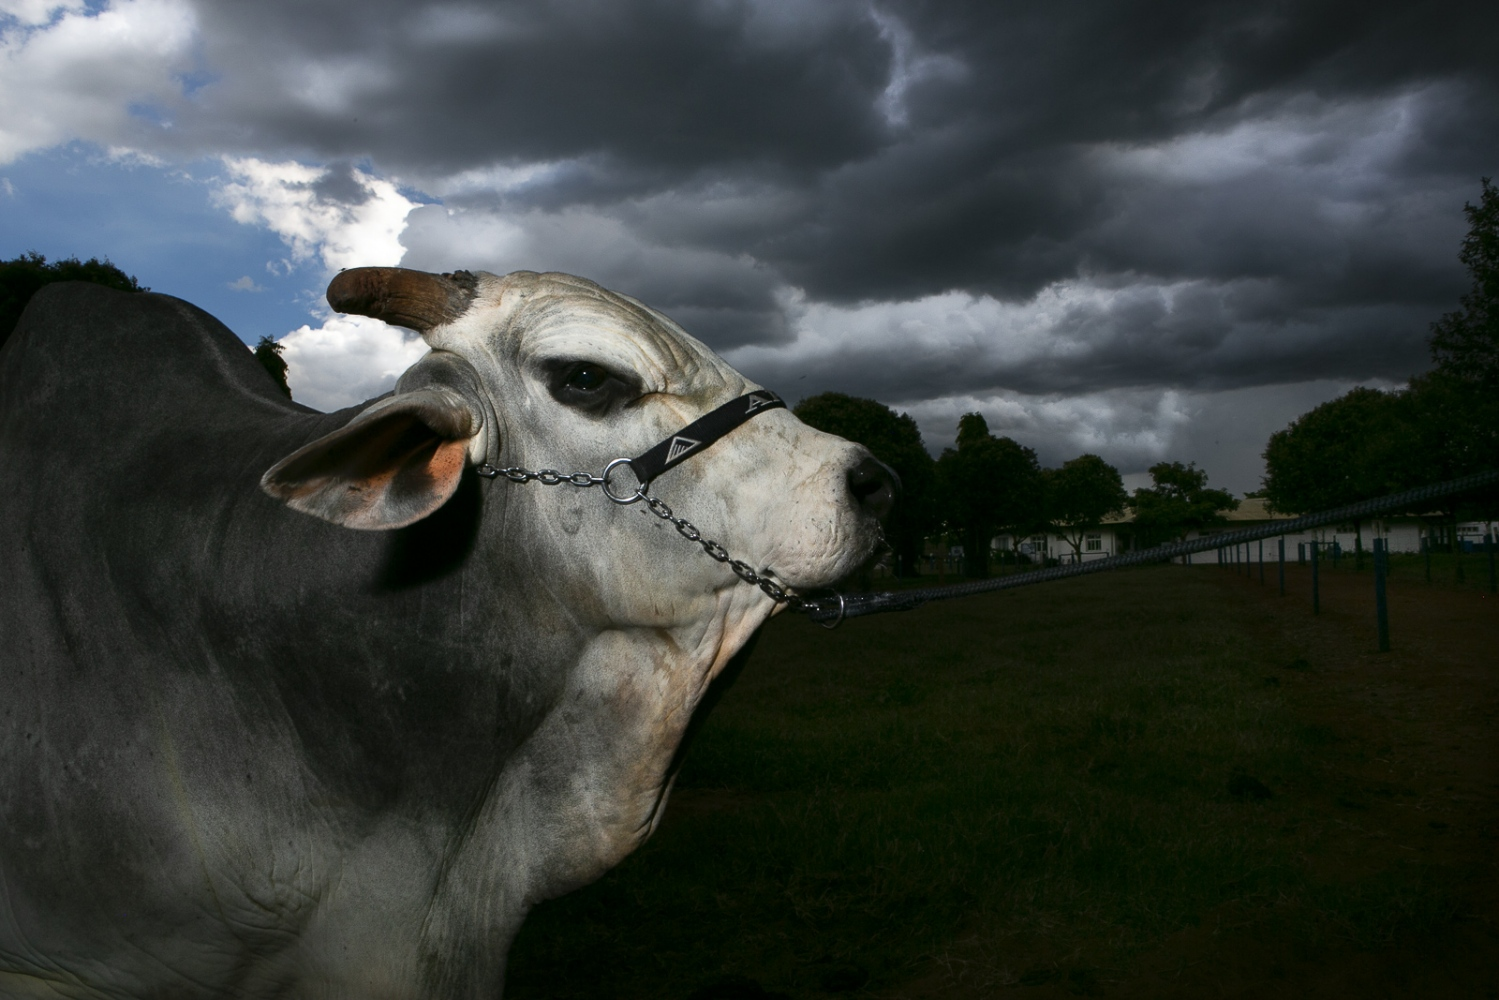 Jabriel, the most prized bull of the Nelore breed, belonging to the Naviraí farm and currently hosted at the Alta Genetics laboratory in Uberaba. The bull was valued at almost US $ 800 thousand in 2016 and is today the most important bull in semen sale of the country. Uberaba, Minas Gerais, Brazil, 2017